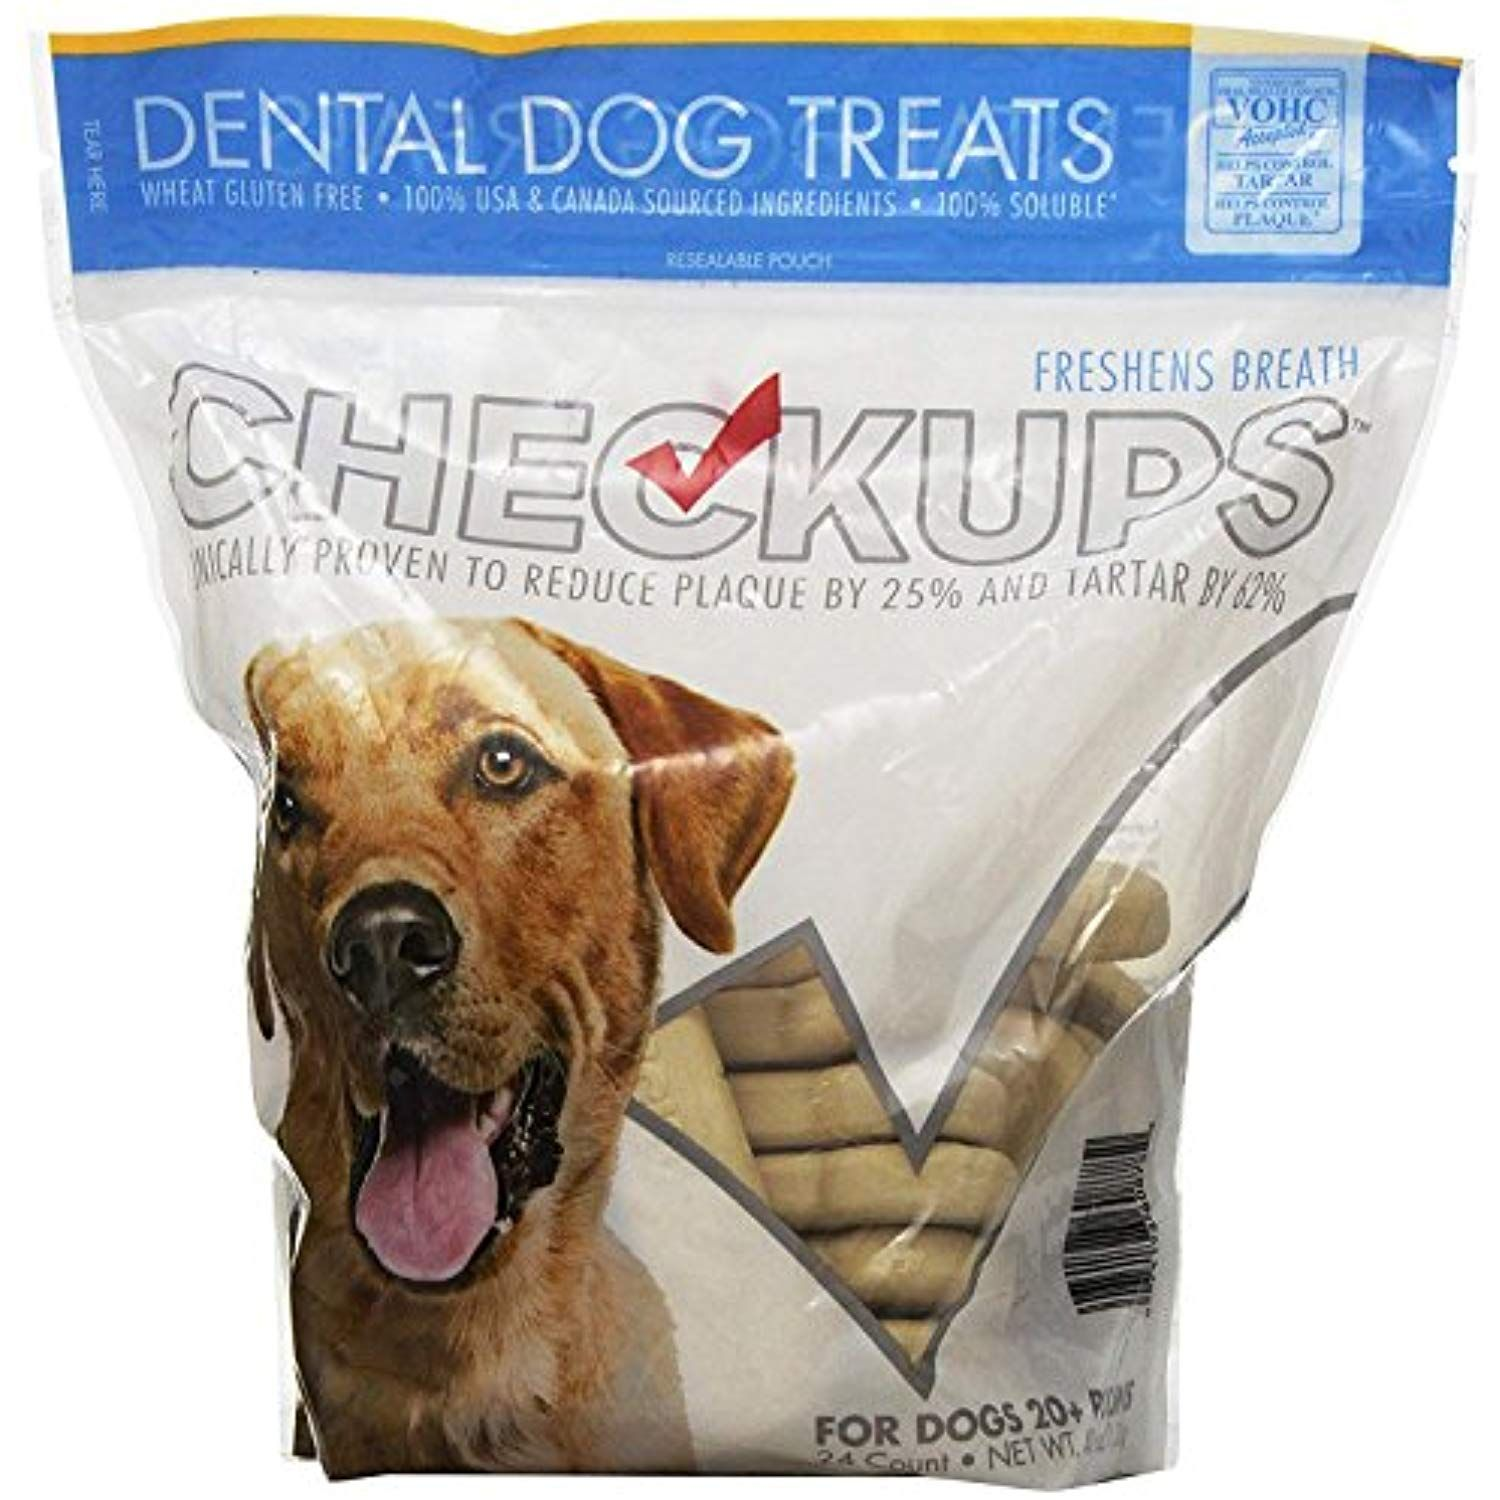 Checkups Dental Dog Treats 24ct 48 Oz For Dogs 20 Pounds Bulk